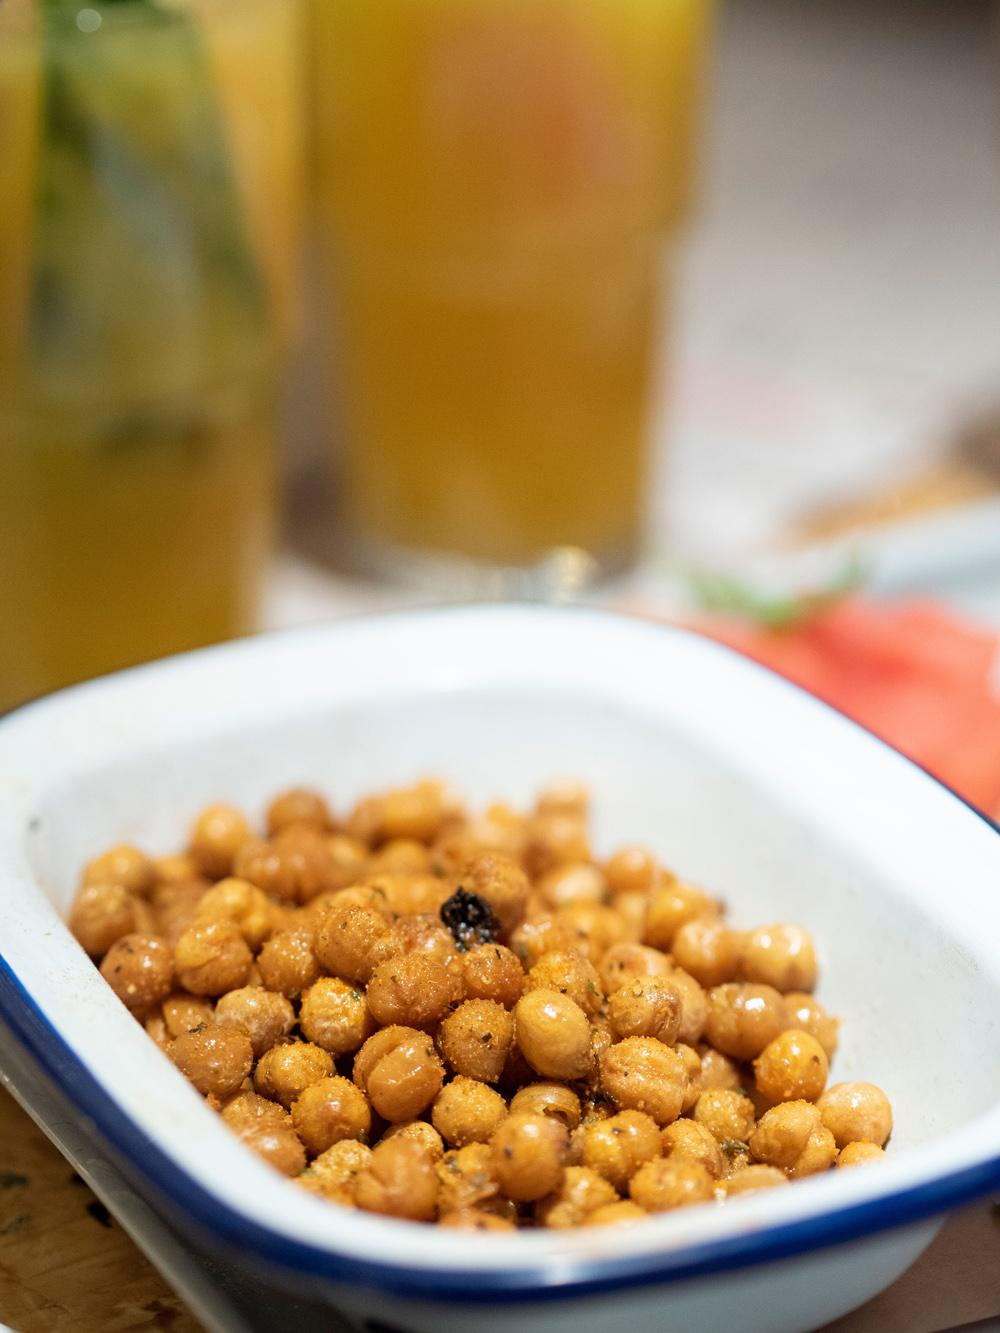 A close up of the chickpeas from the Turtle Bay Festive Menu. They are crispy and you can see that they have a salty crunchy texture to the outside.